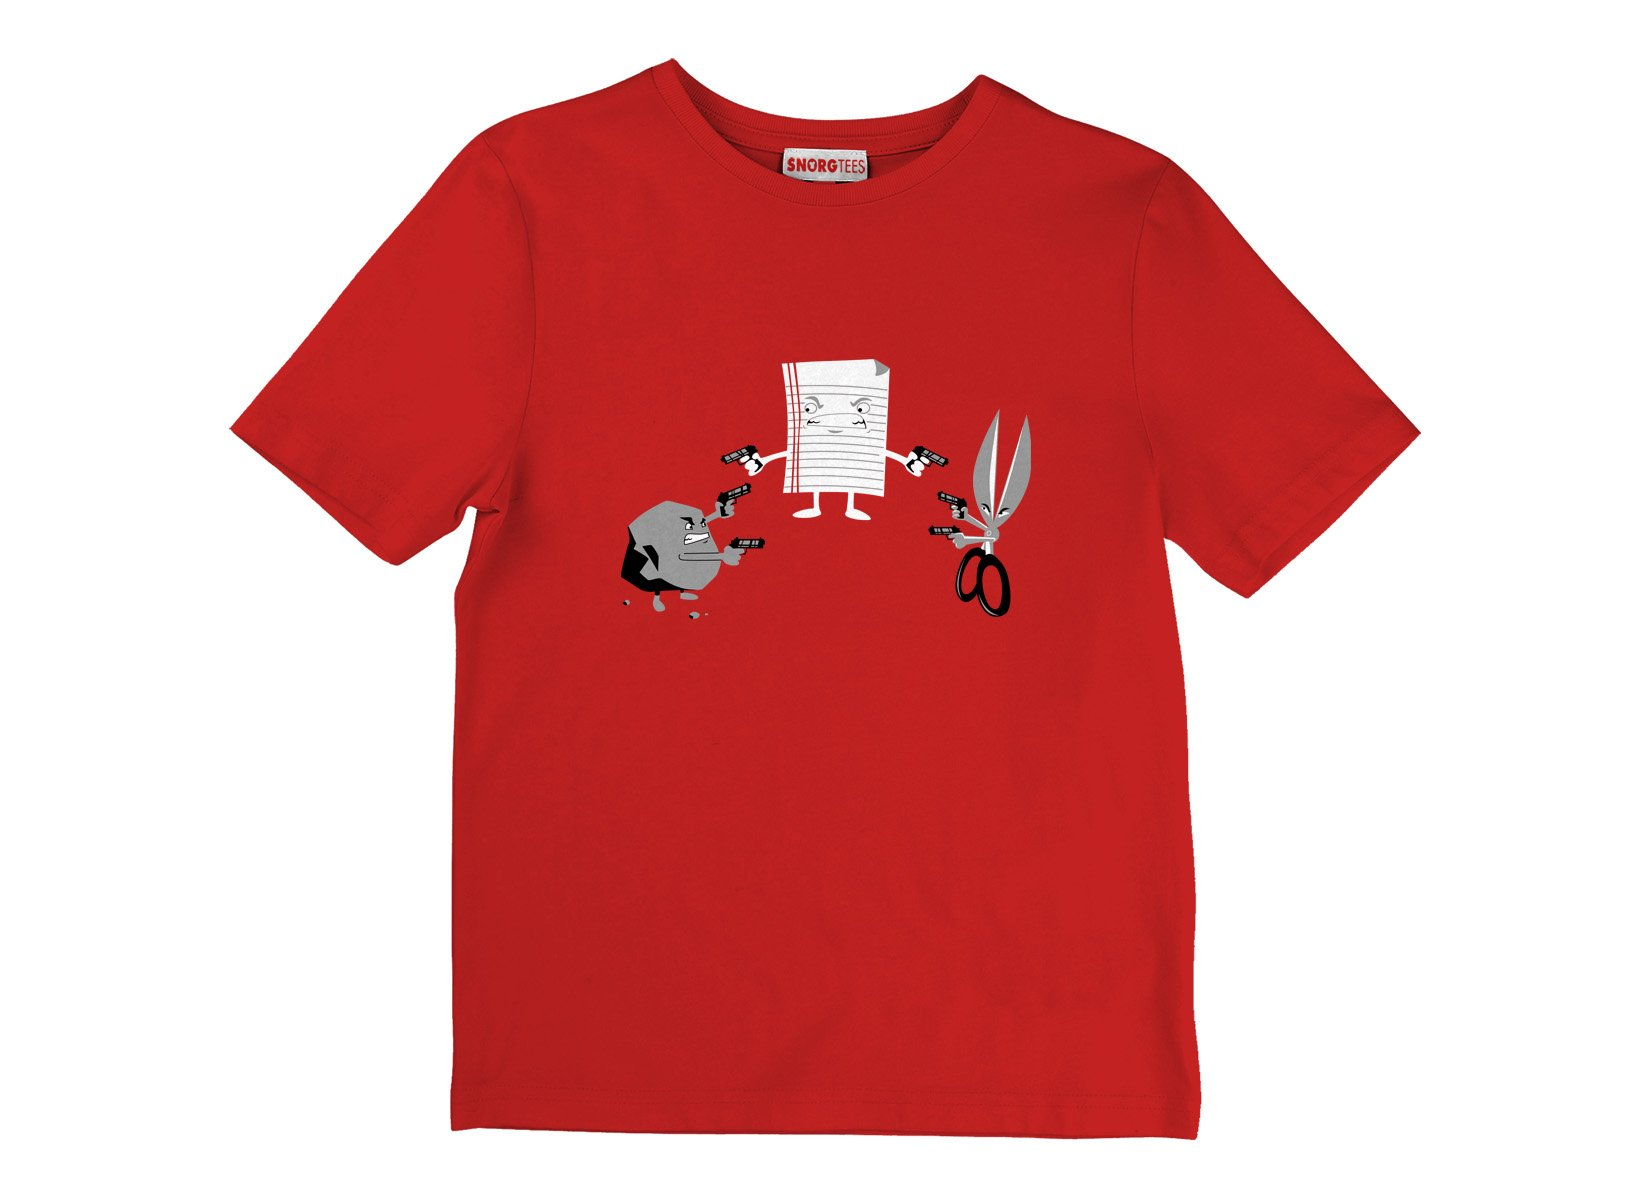 Mexican Standoff on Kids T-Shirt